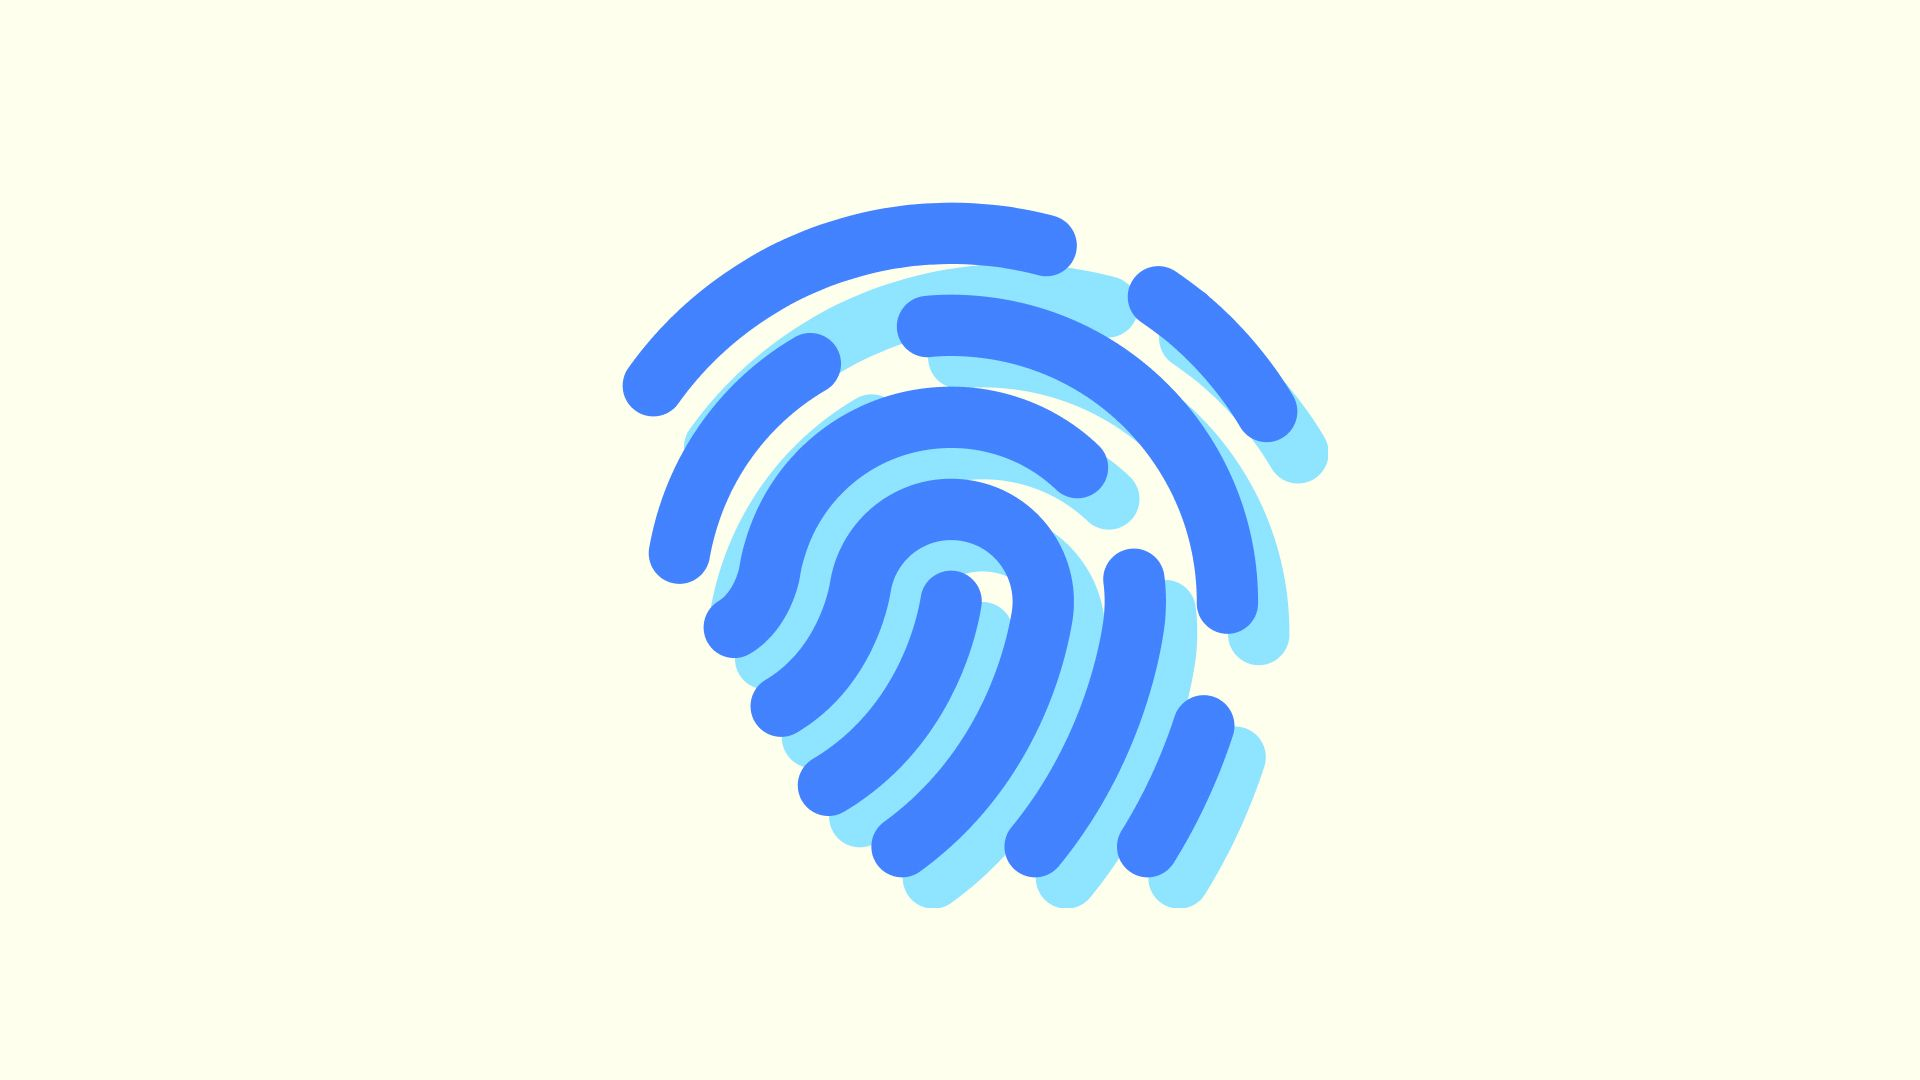 Fingerprint Sensors in All the Things